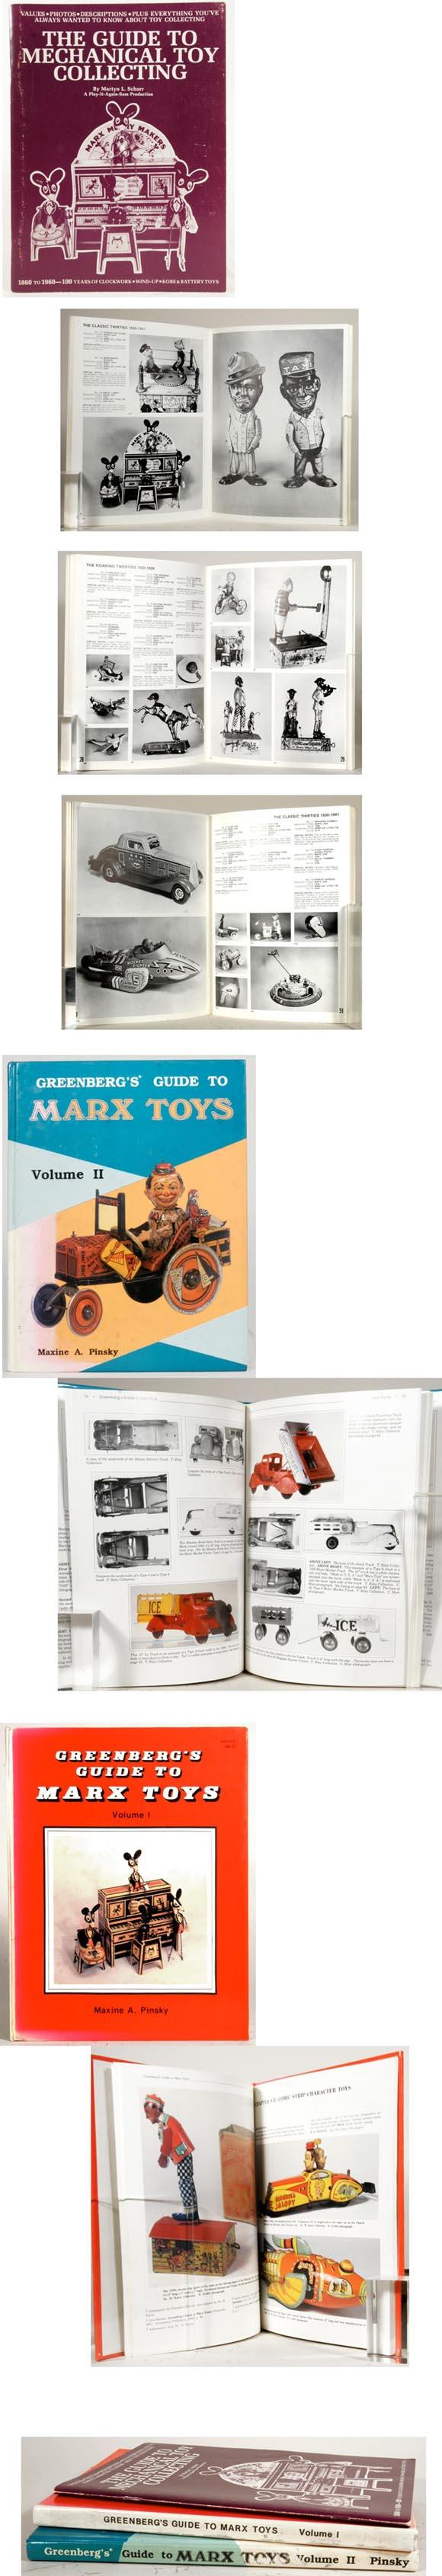 Three Mechanical Toy Collecting Books